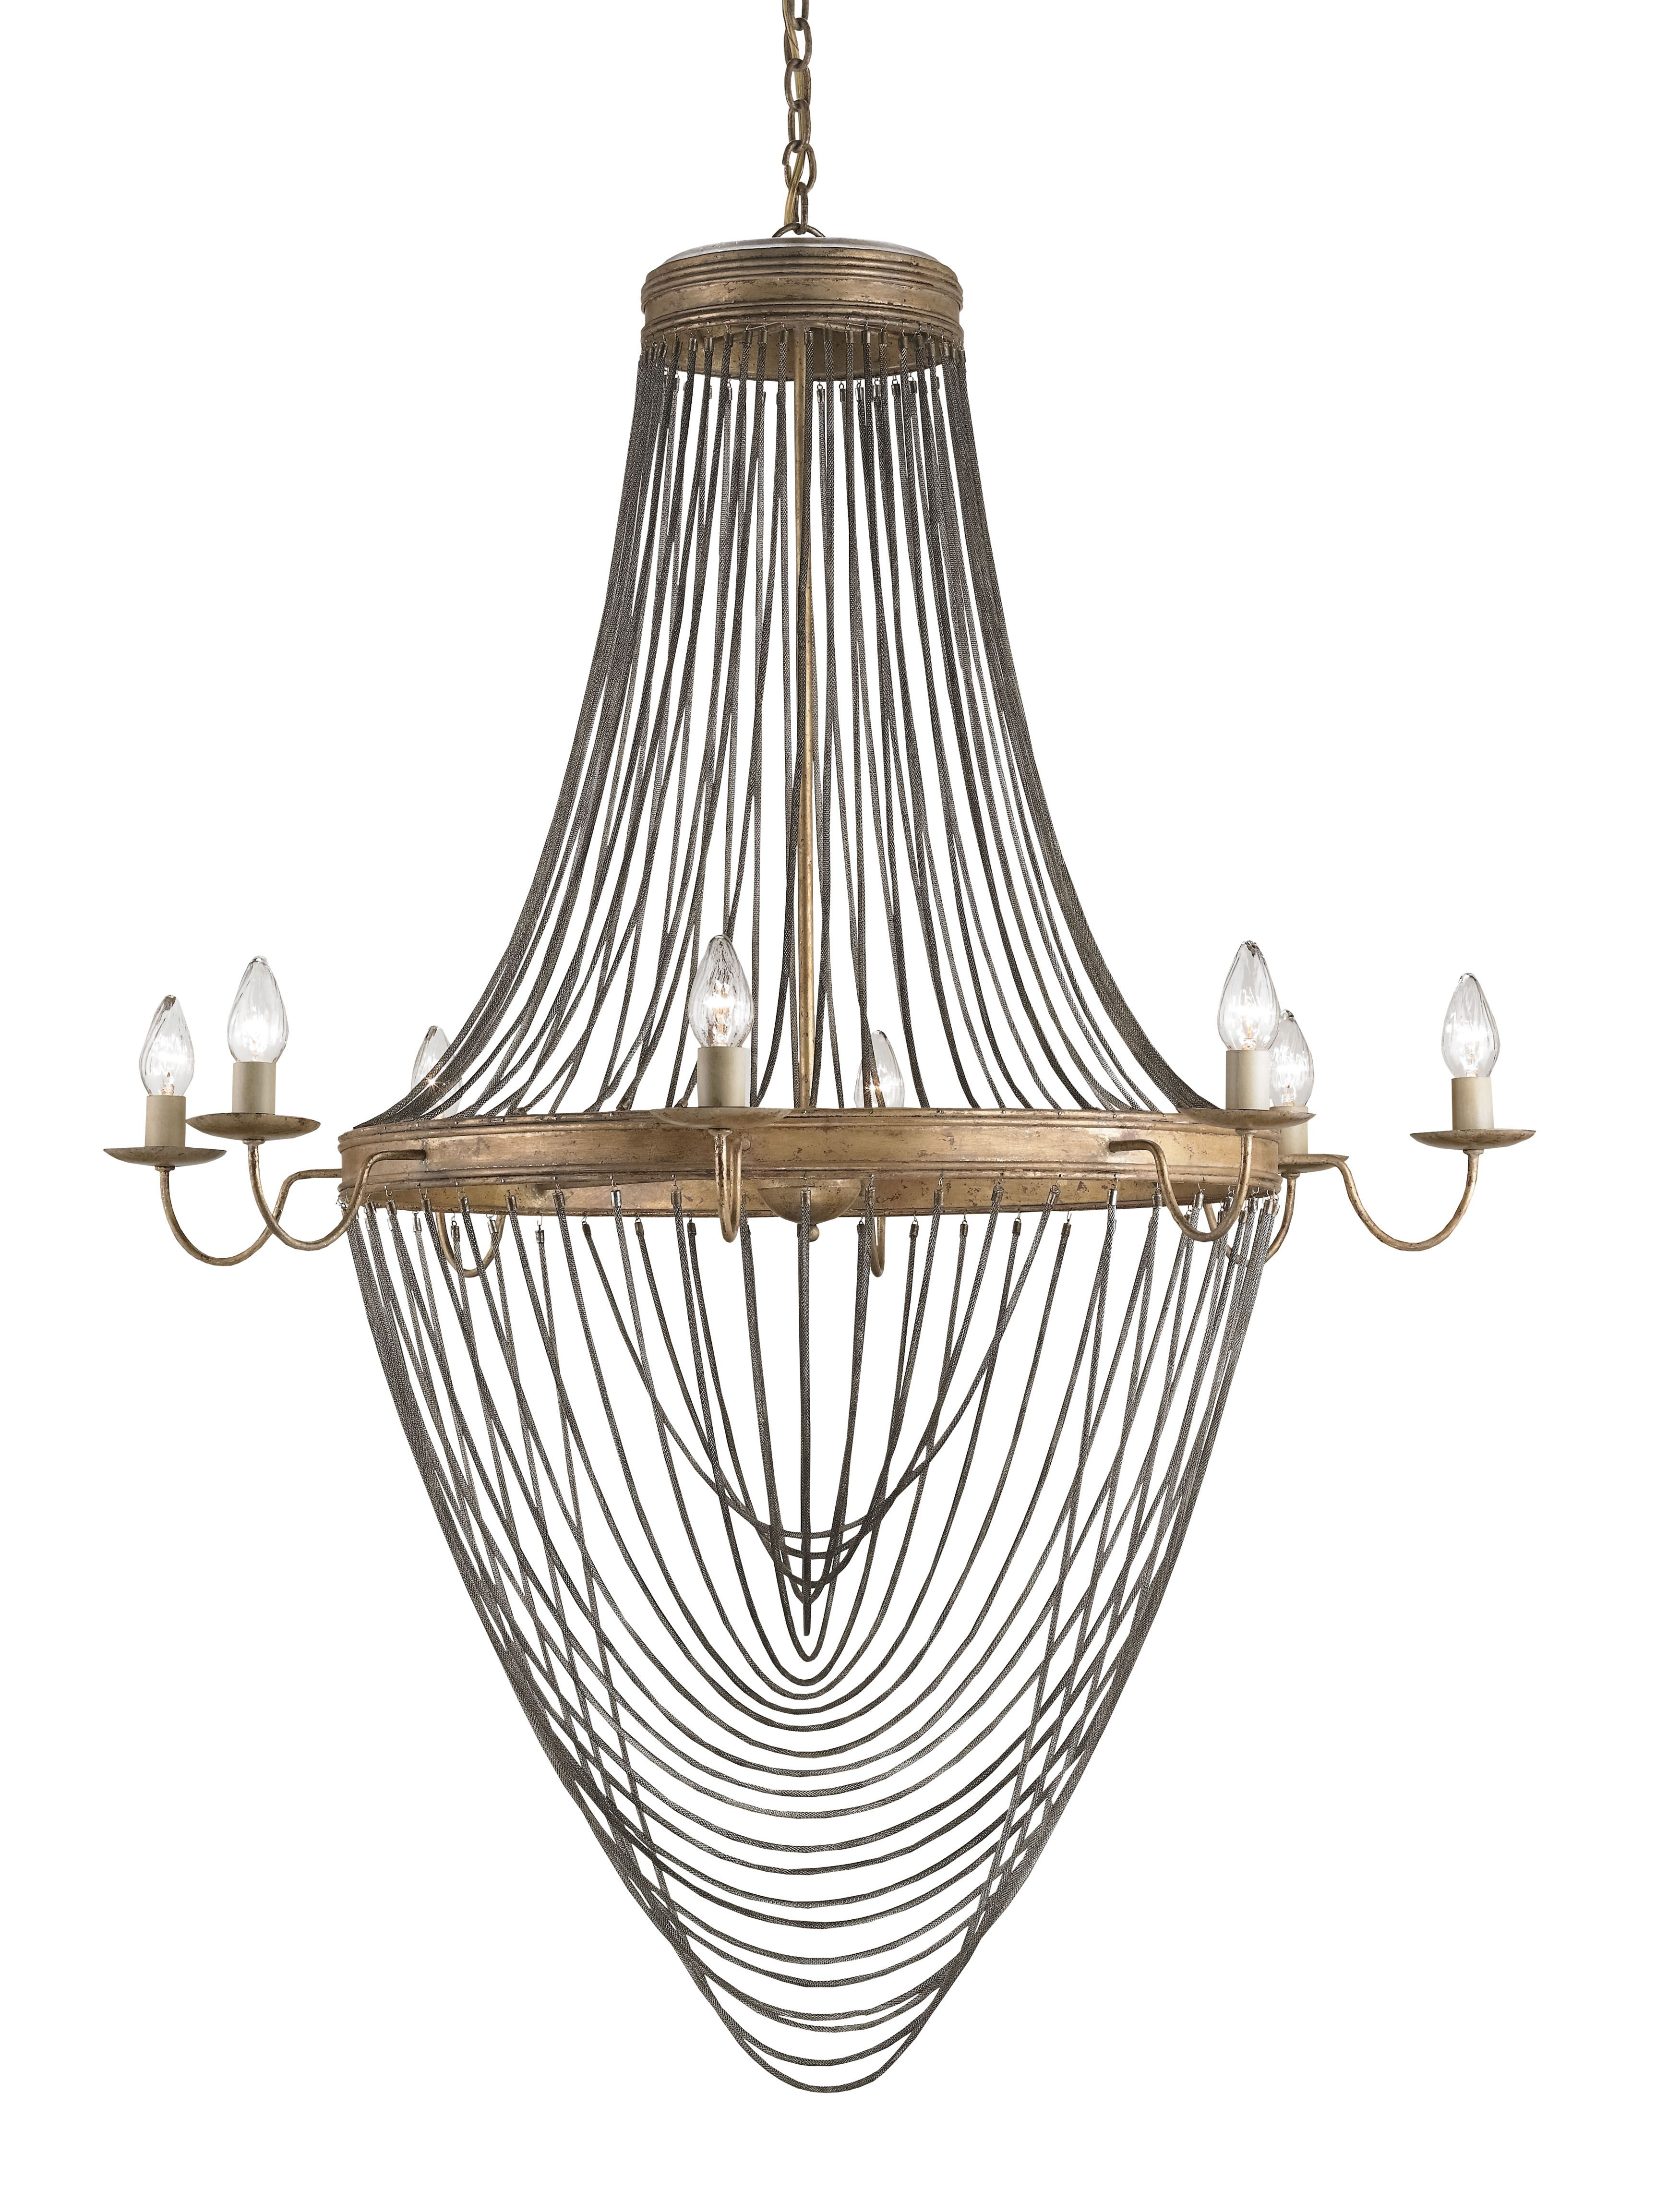 Lucien Chandelier 9412 Material Wrought Iron Chain